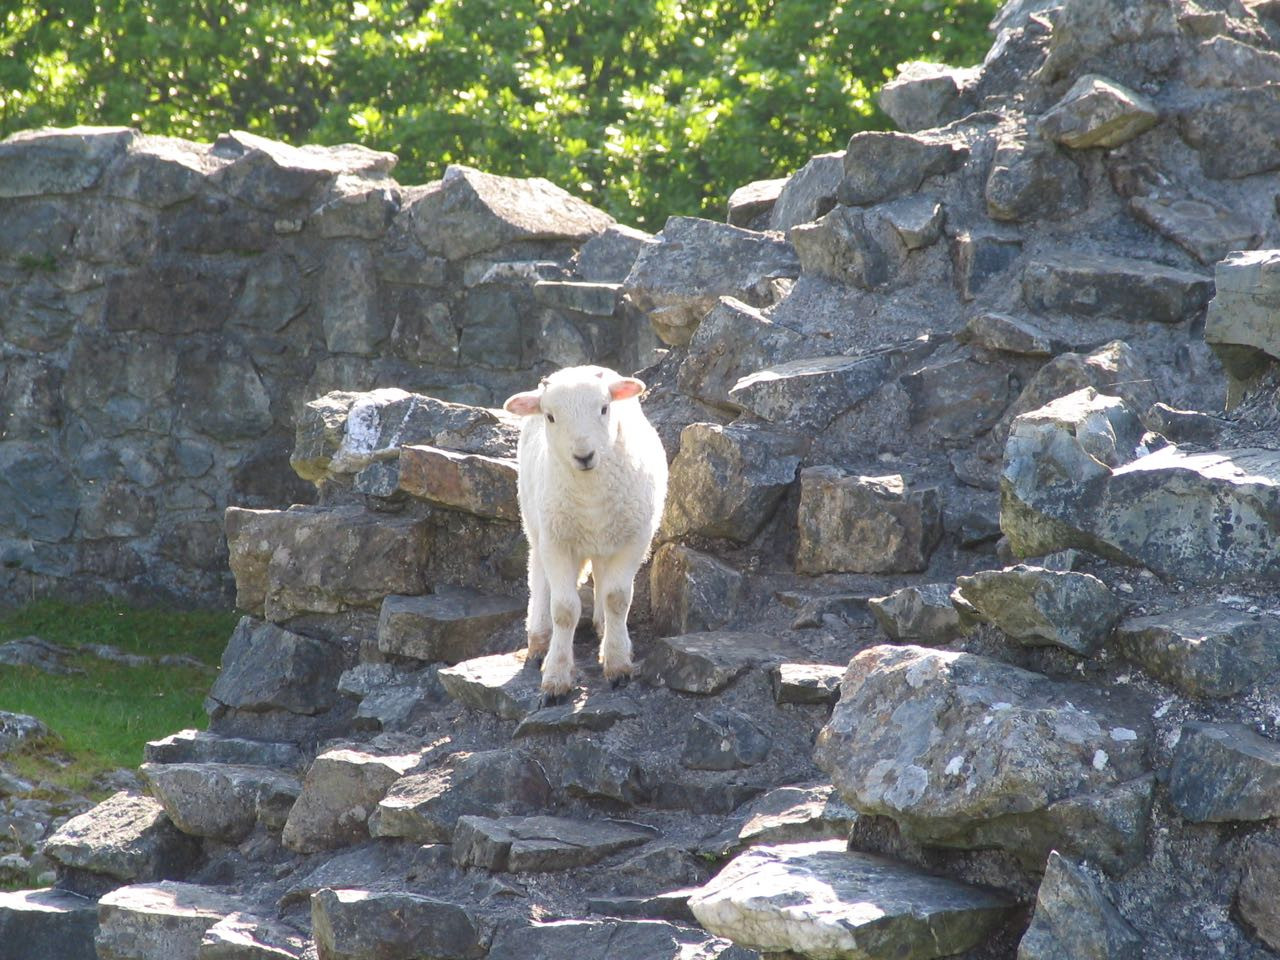 One of the Locals at Castell y Bere